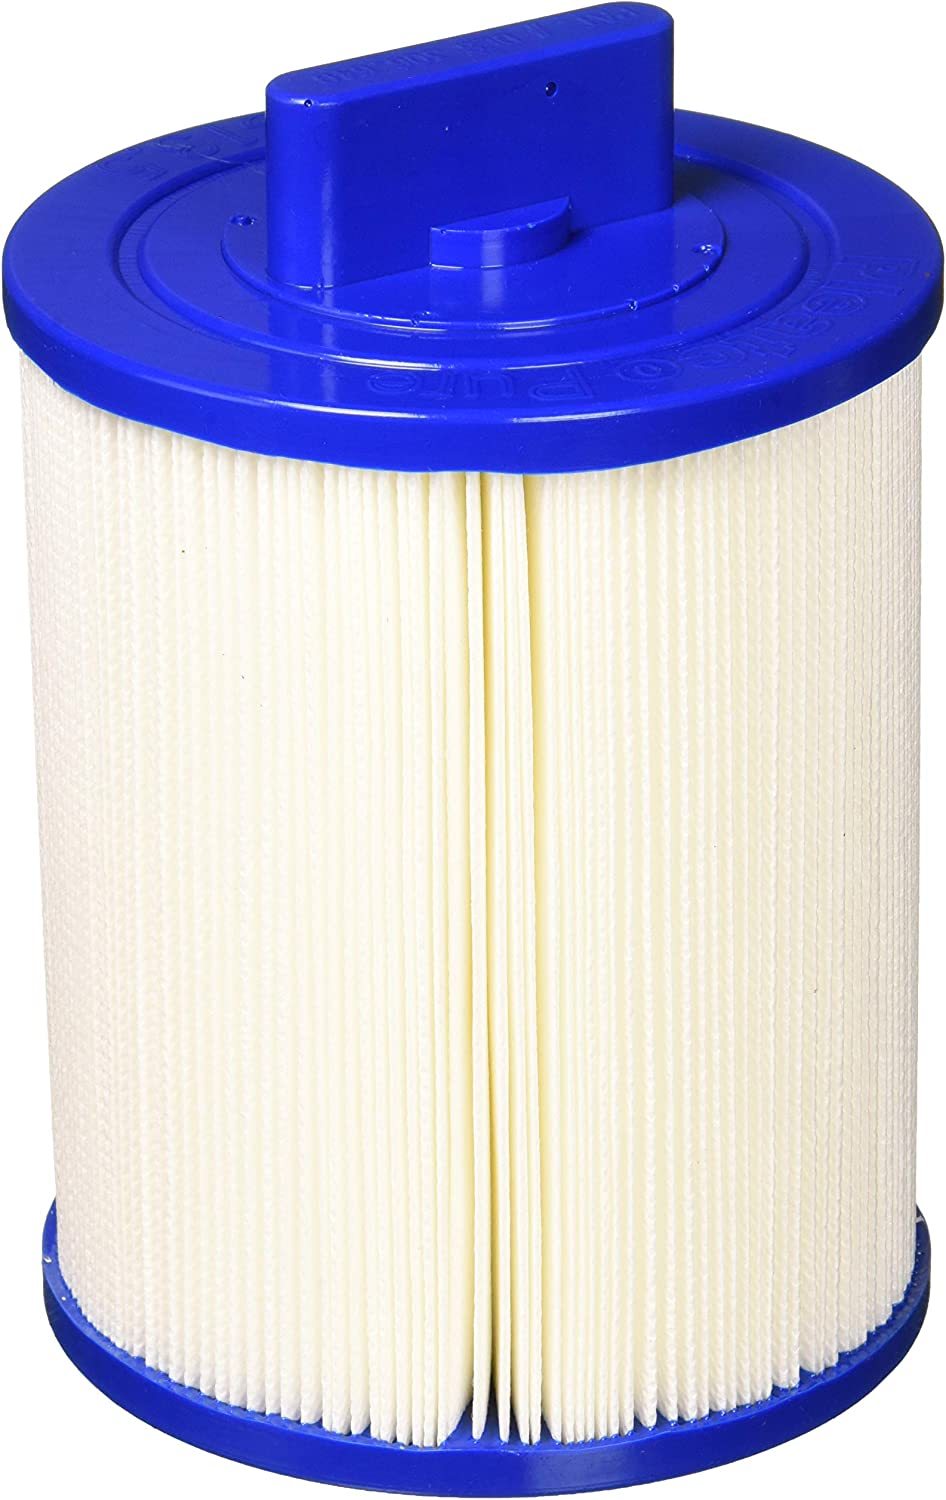 Saratoga Spa Filter PSG13.5 Hot tub Filters 4-CH19 Spas Dolphin Leisure Bay